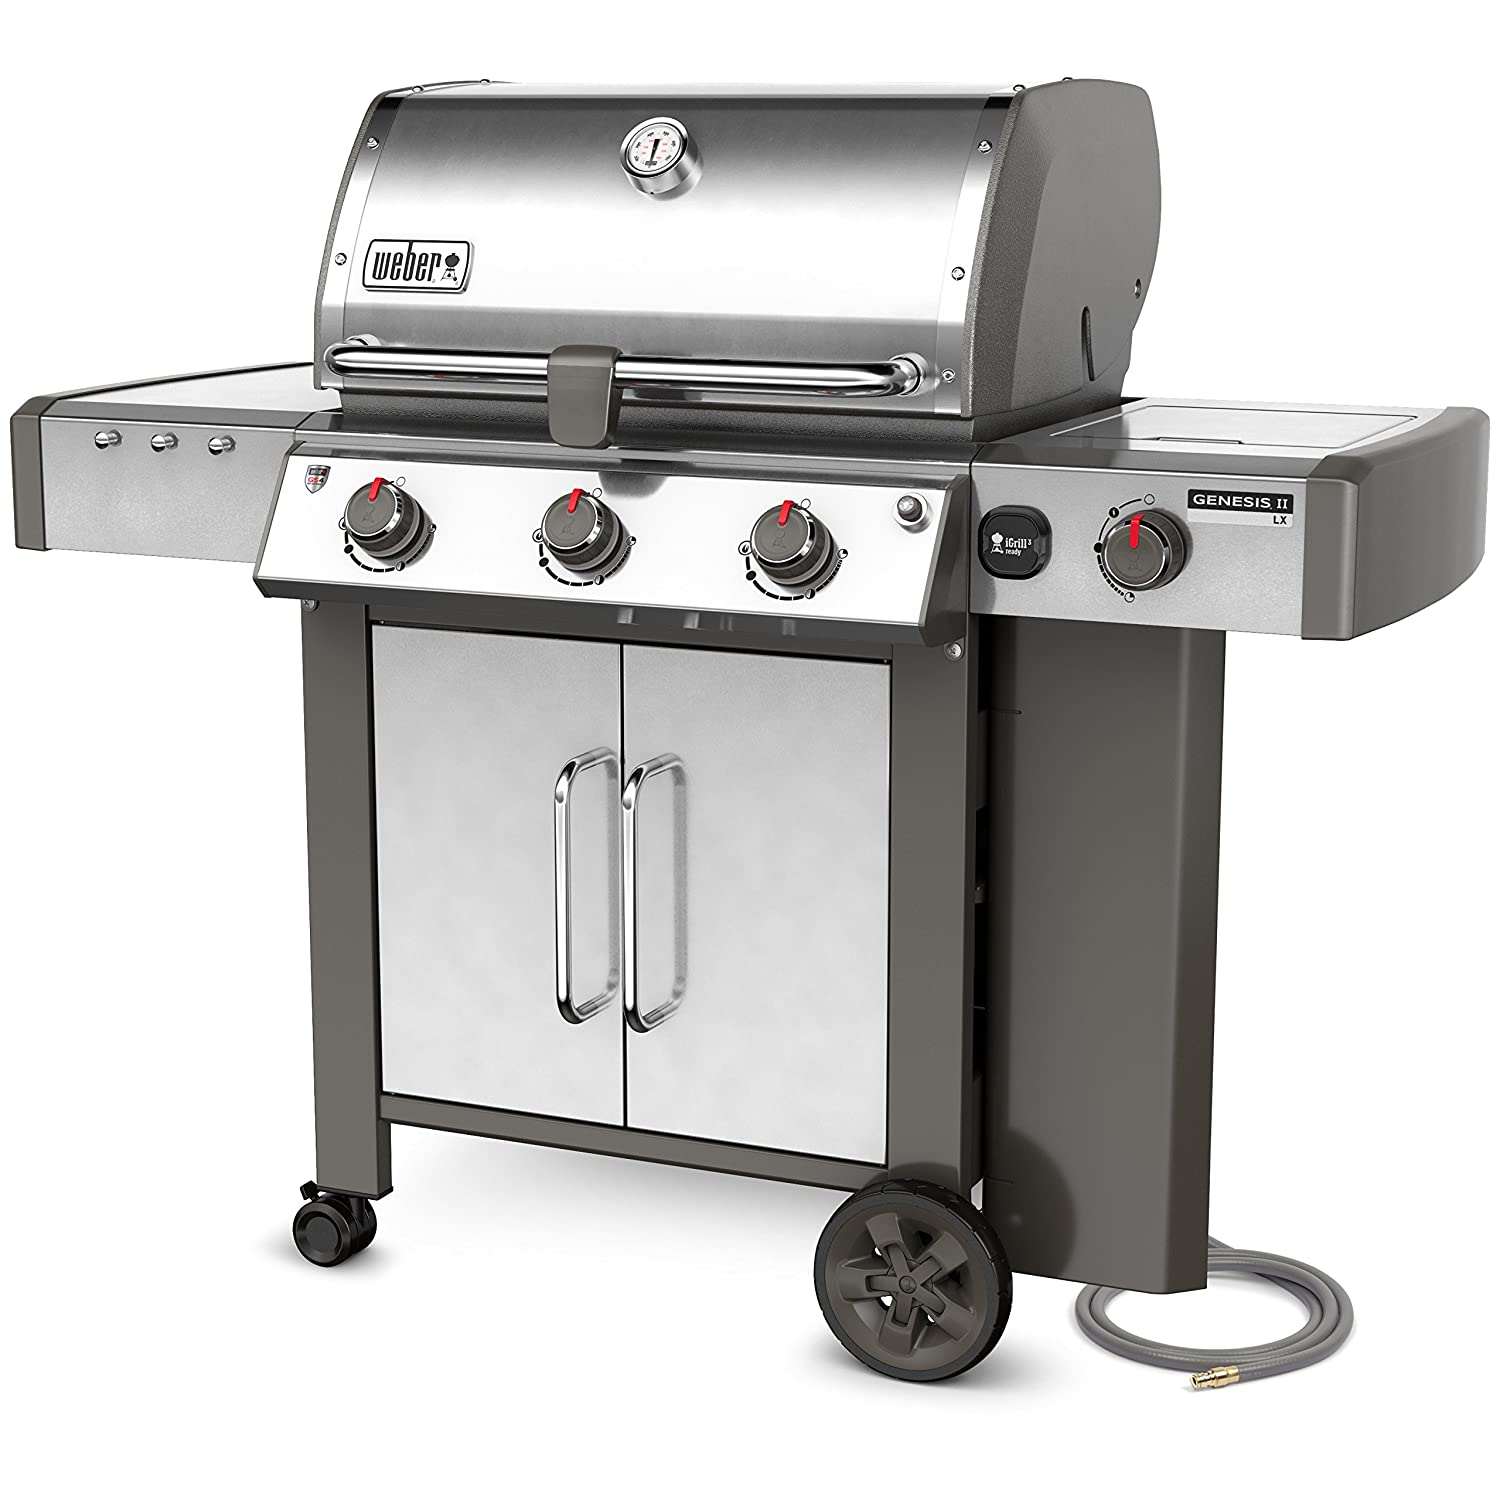 Amazon.com: Weber 66004001 Genesis II LX S-340 Natural Gas Grill ...